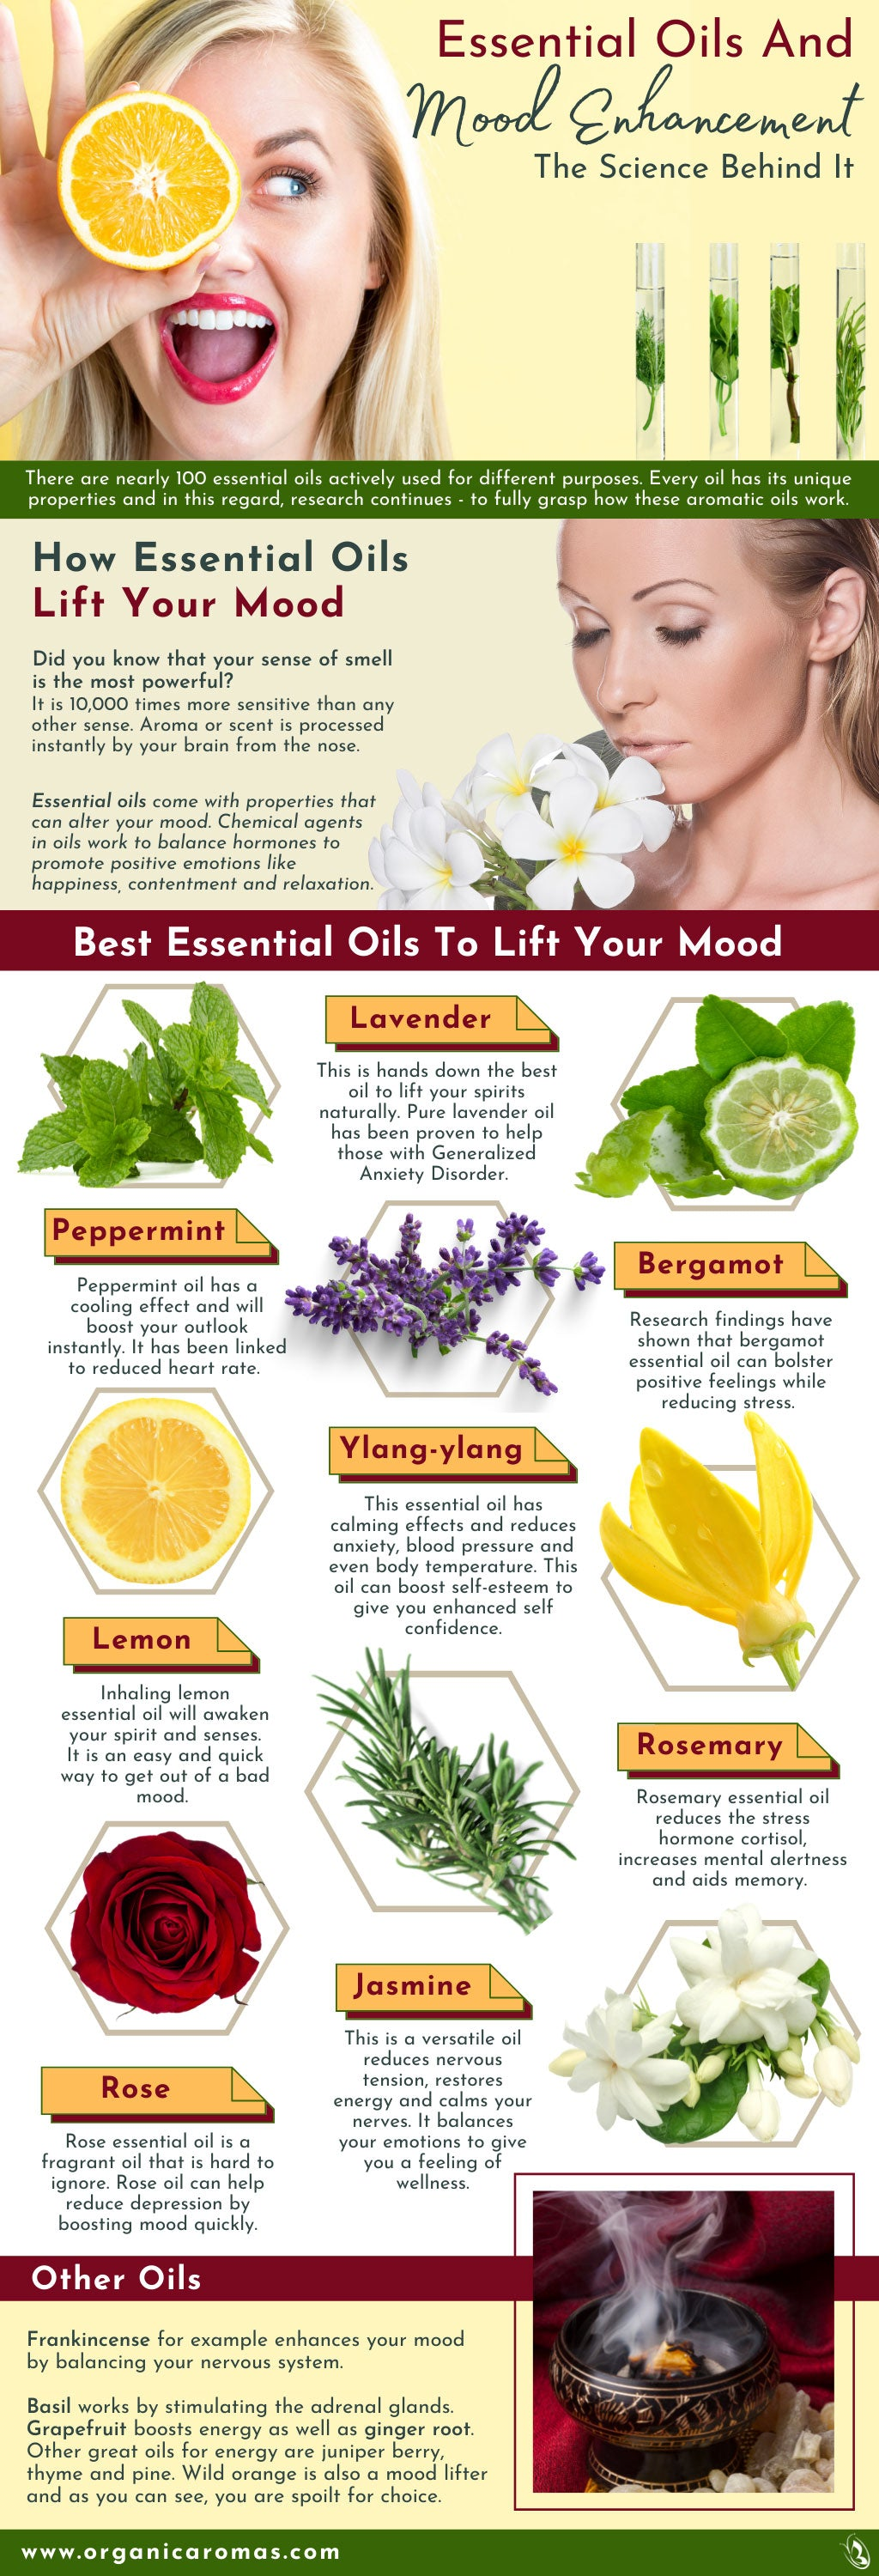 Essential Oils And Mood Enhancement - The Science Behind It